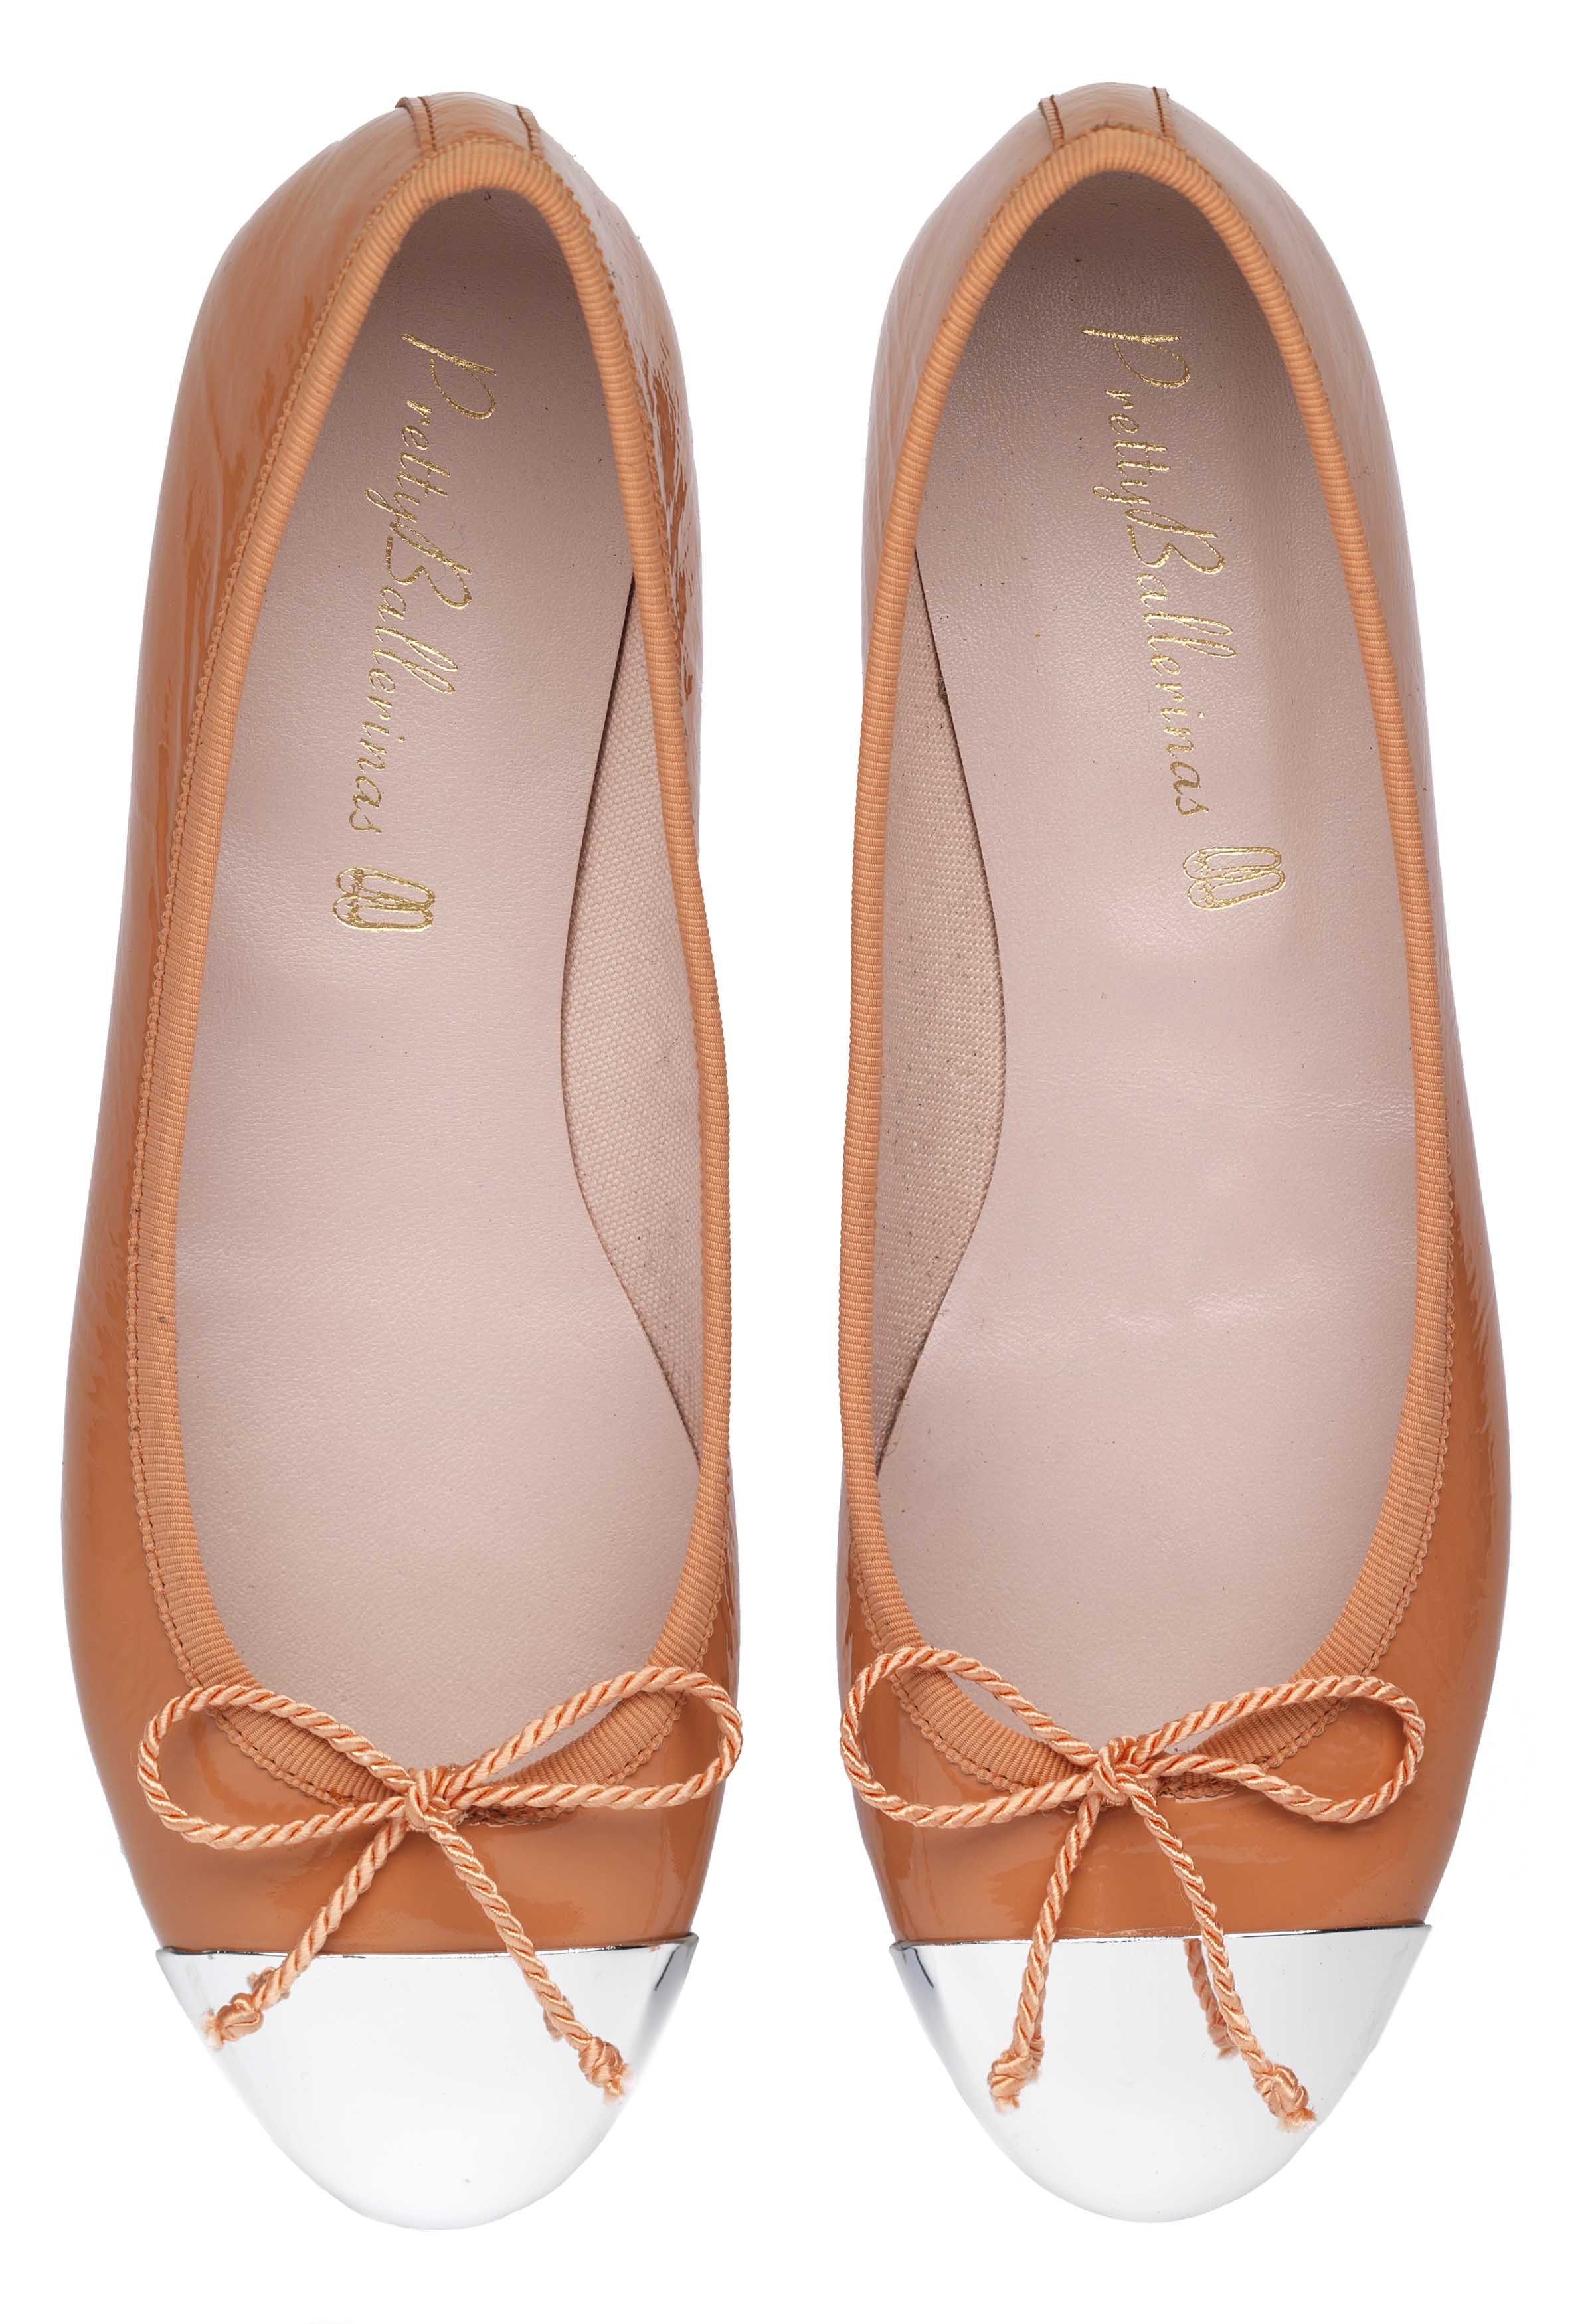 Nicole solid metal tip peach patent - pair